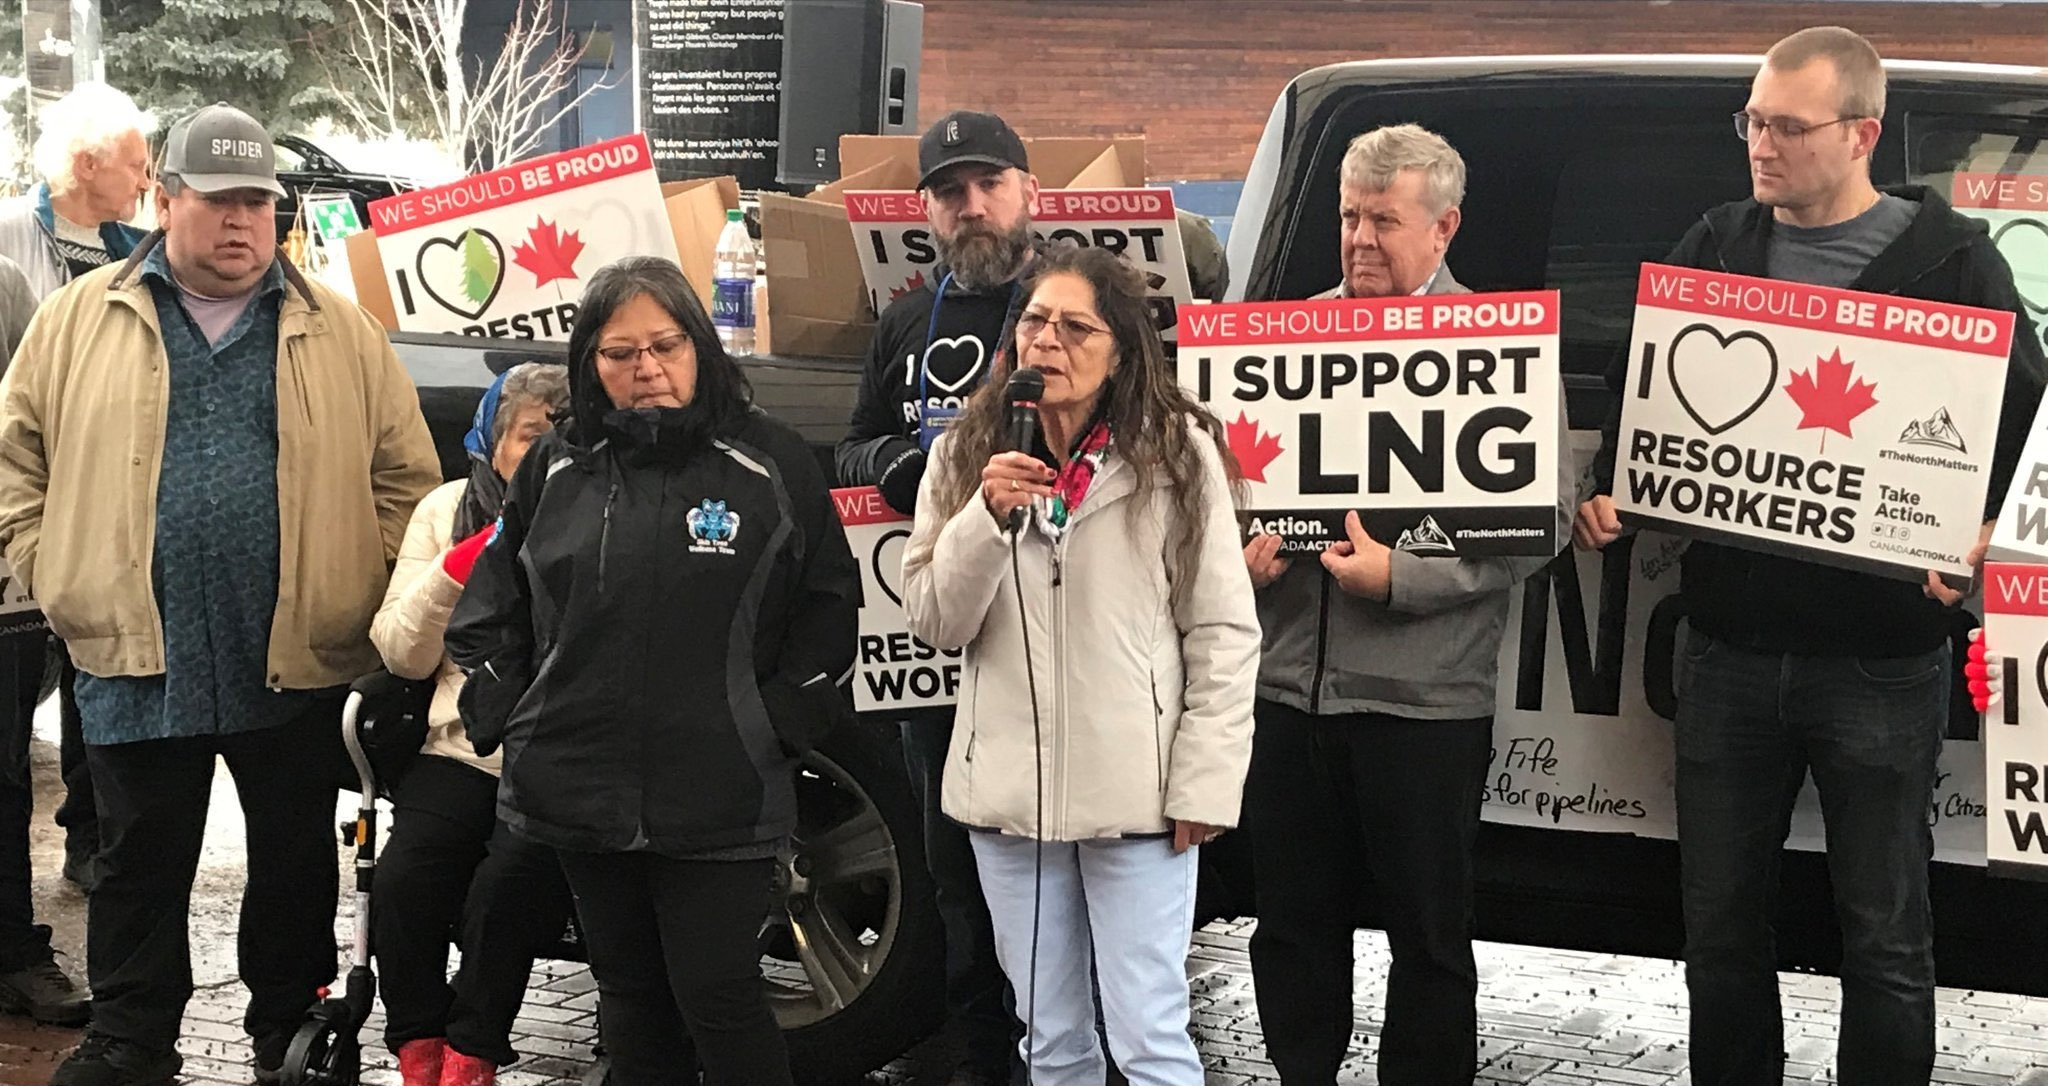 Prince George LNG Rally 2020